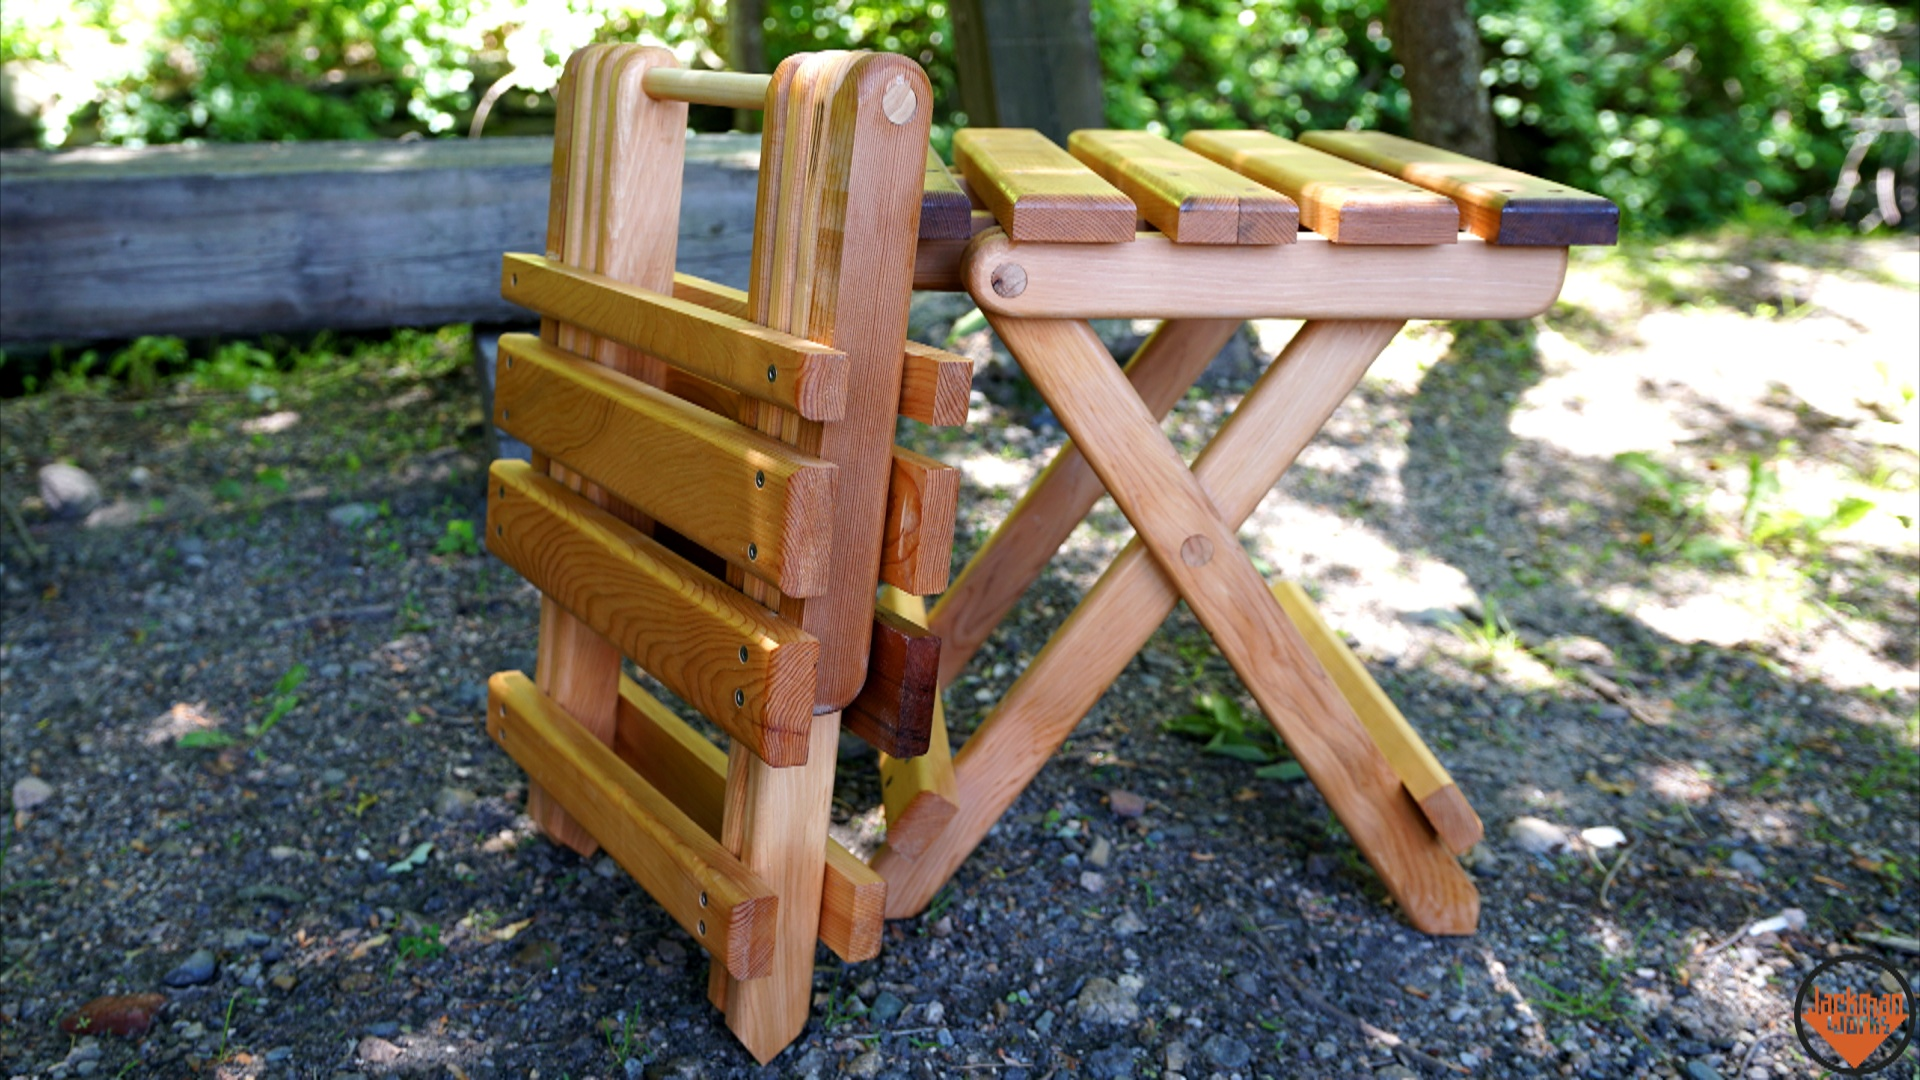 Table,Adirondack,Jackman,Jackman Works,Collapsible,Folding,Folding Table, Adirondack Table,Adirondack Chair,Collapsible Furniture,incredible,picnic  ...